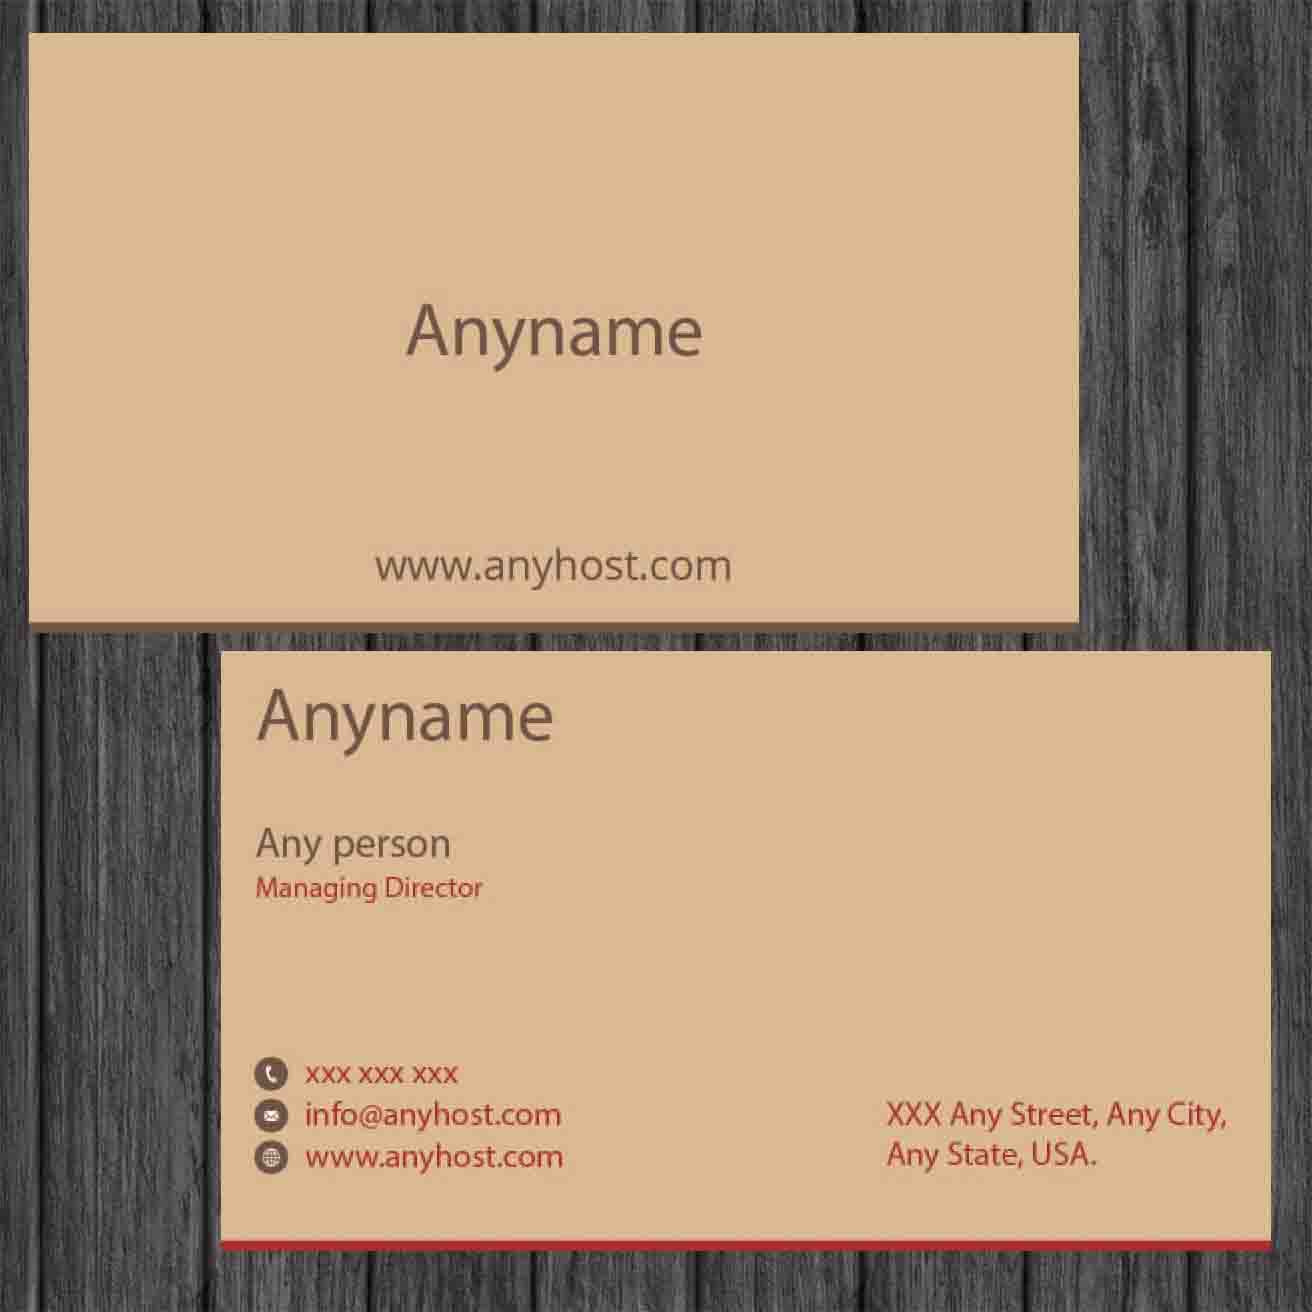 Hari Krishna designing farm: Most professional business card